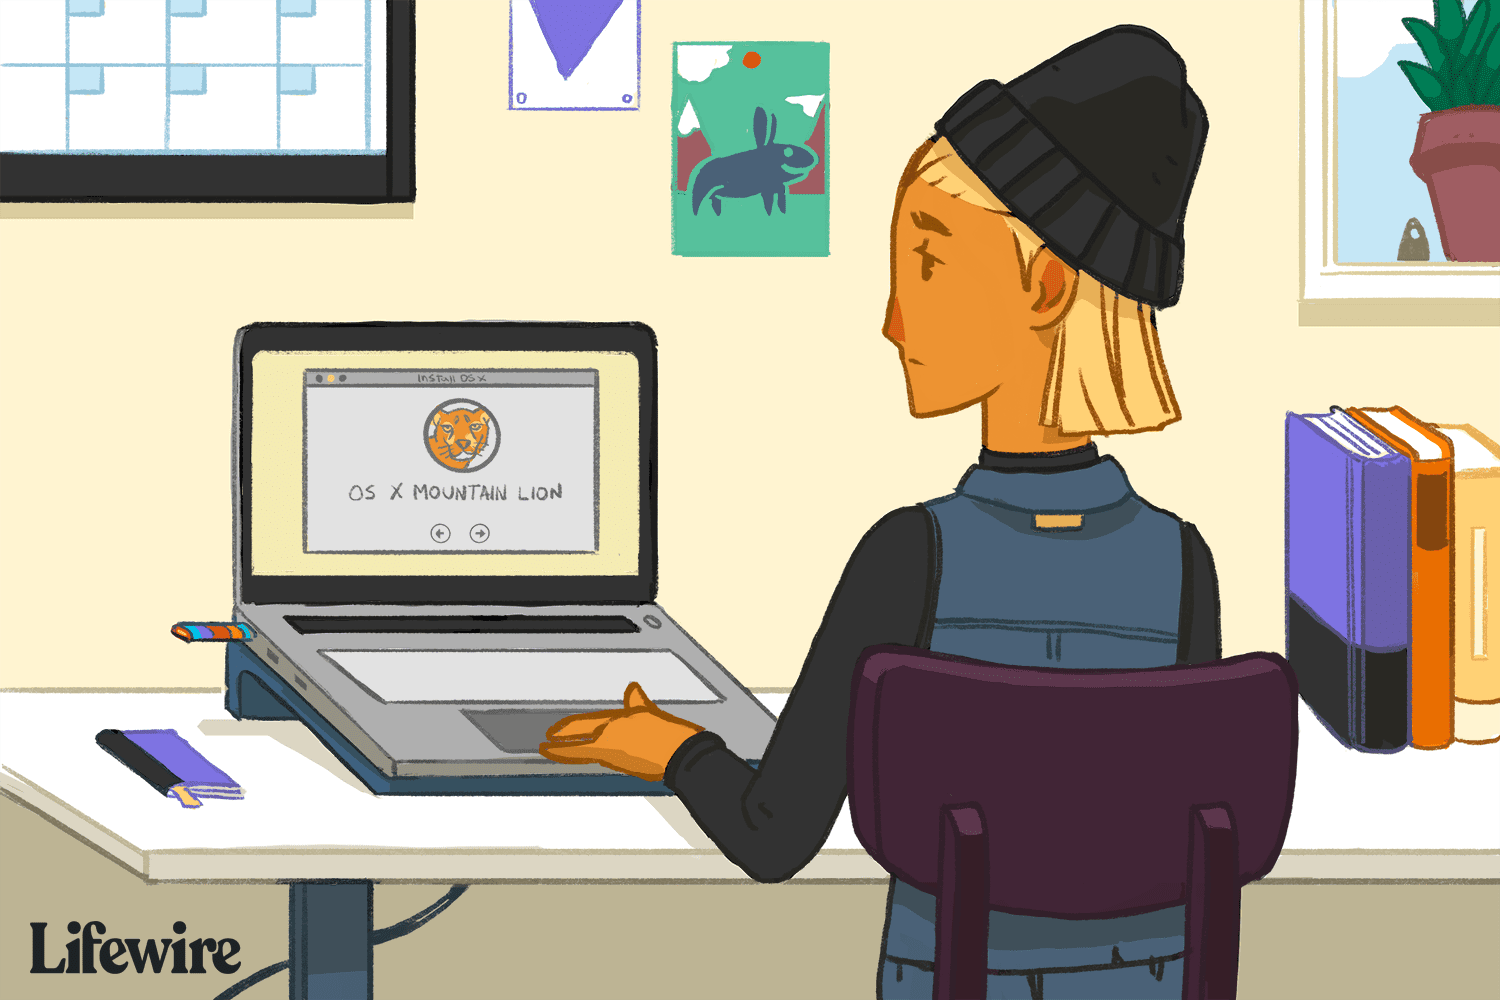 Illustration of a person using a laptop to create an OS X Mountain Lion bootable USB drive